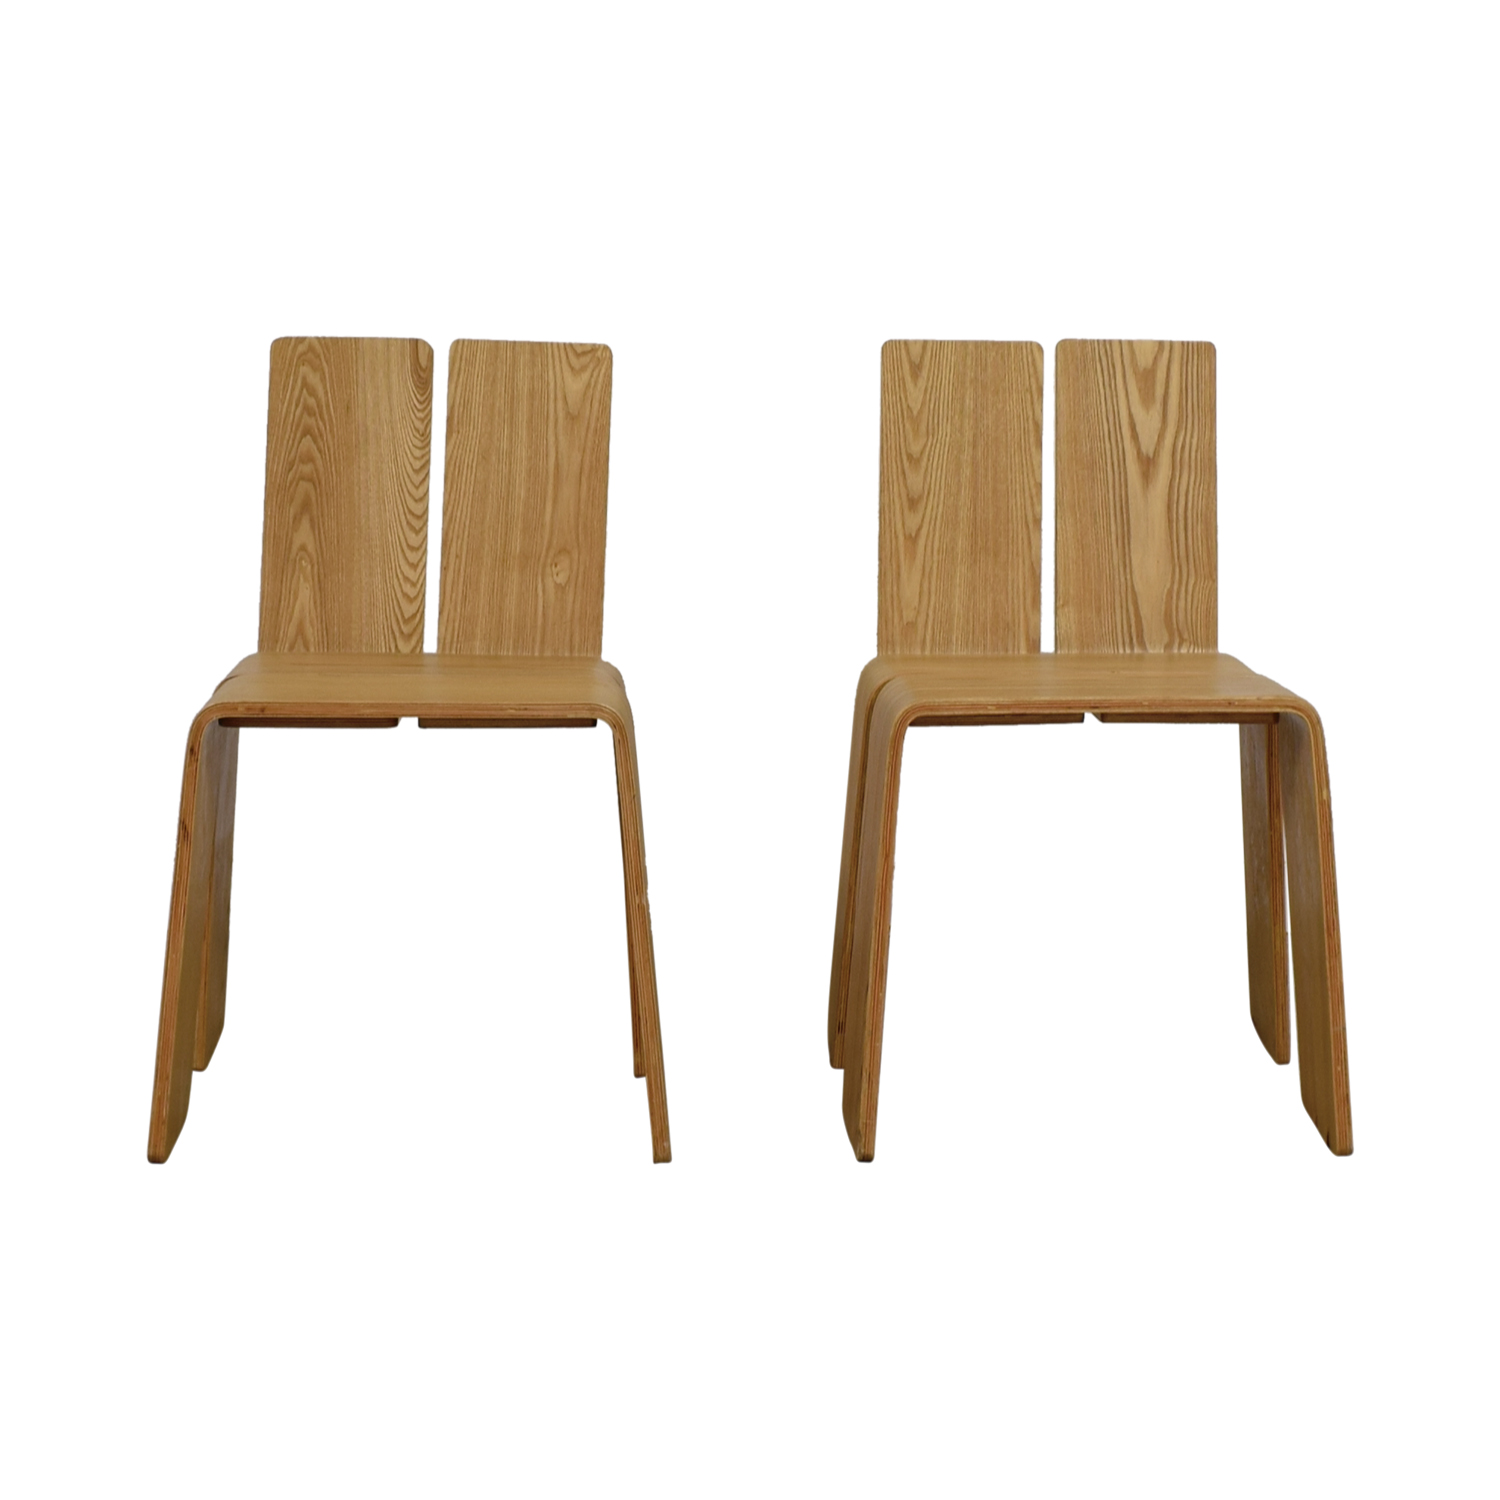 Contempo Natural Beech Wood Chairs Dining Chairs